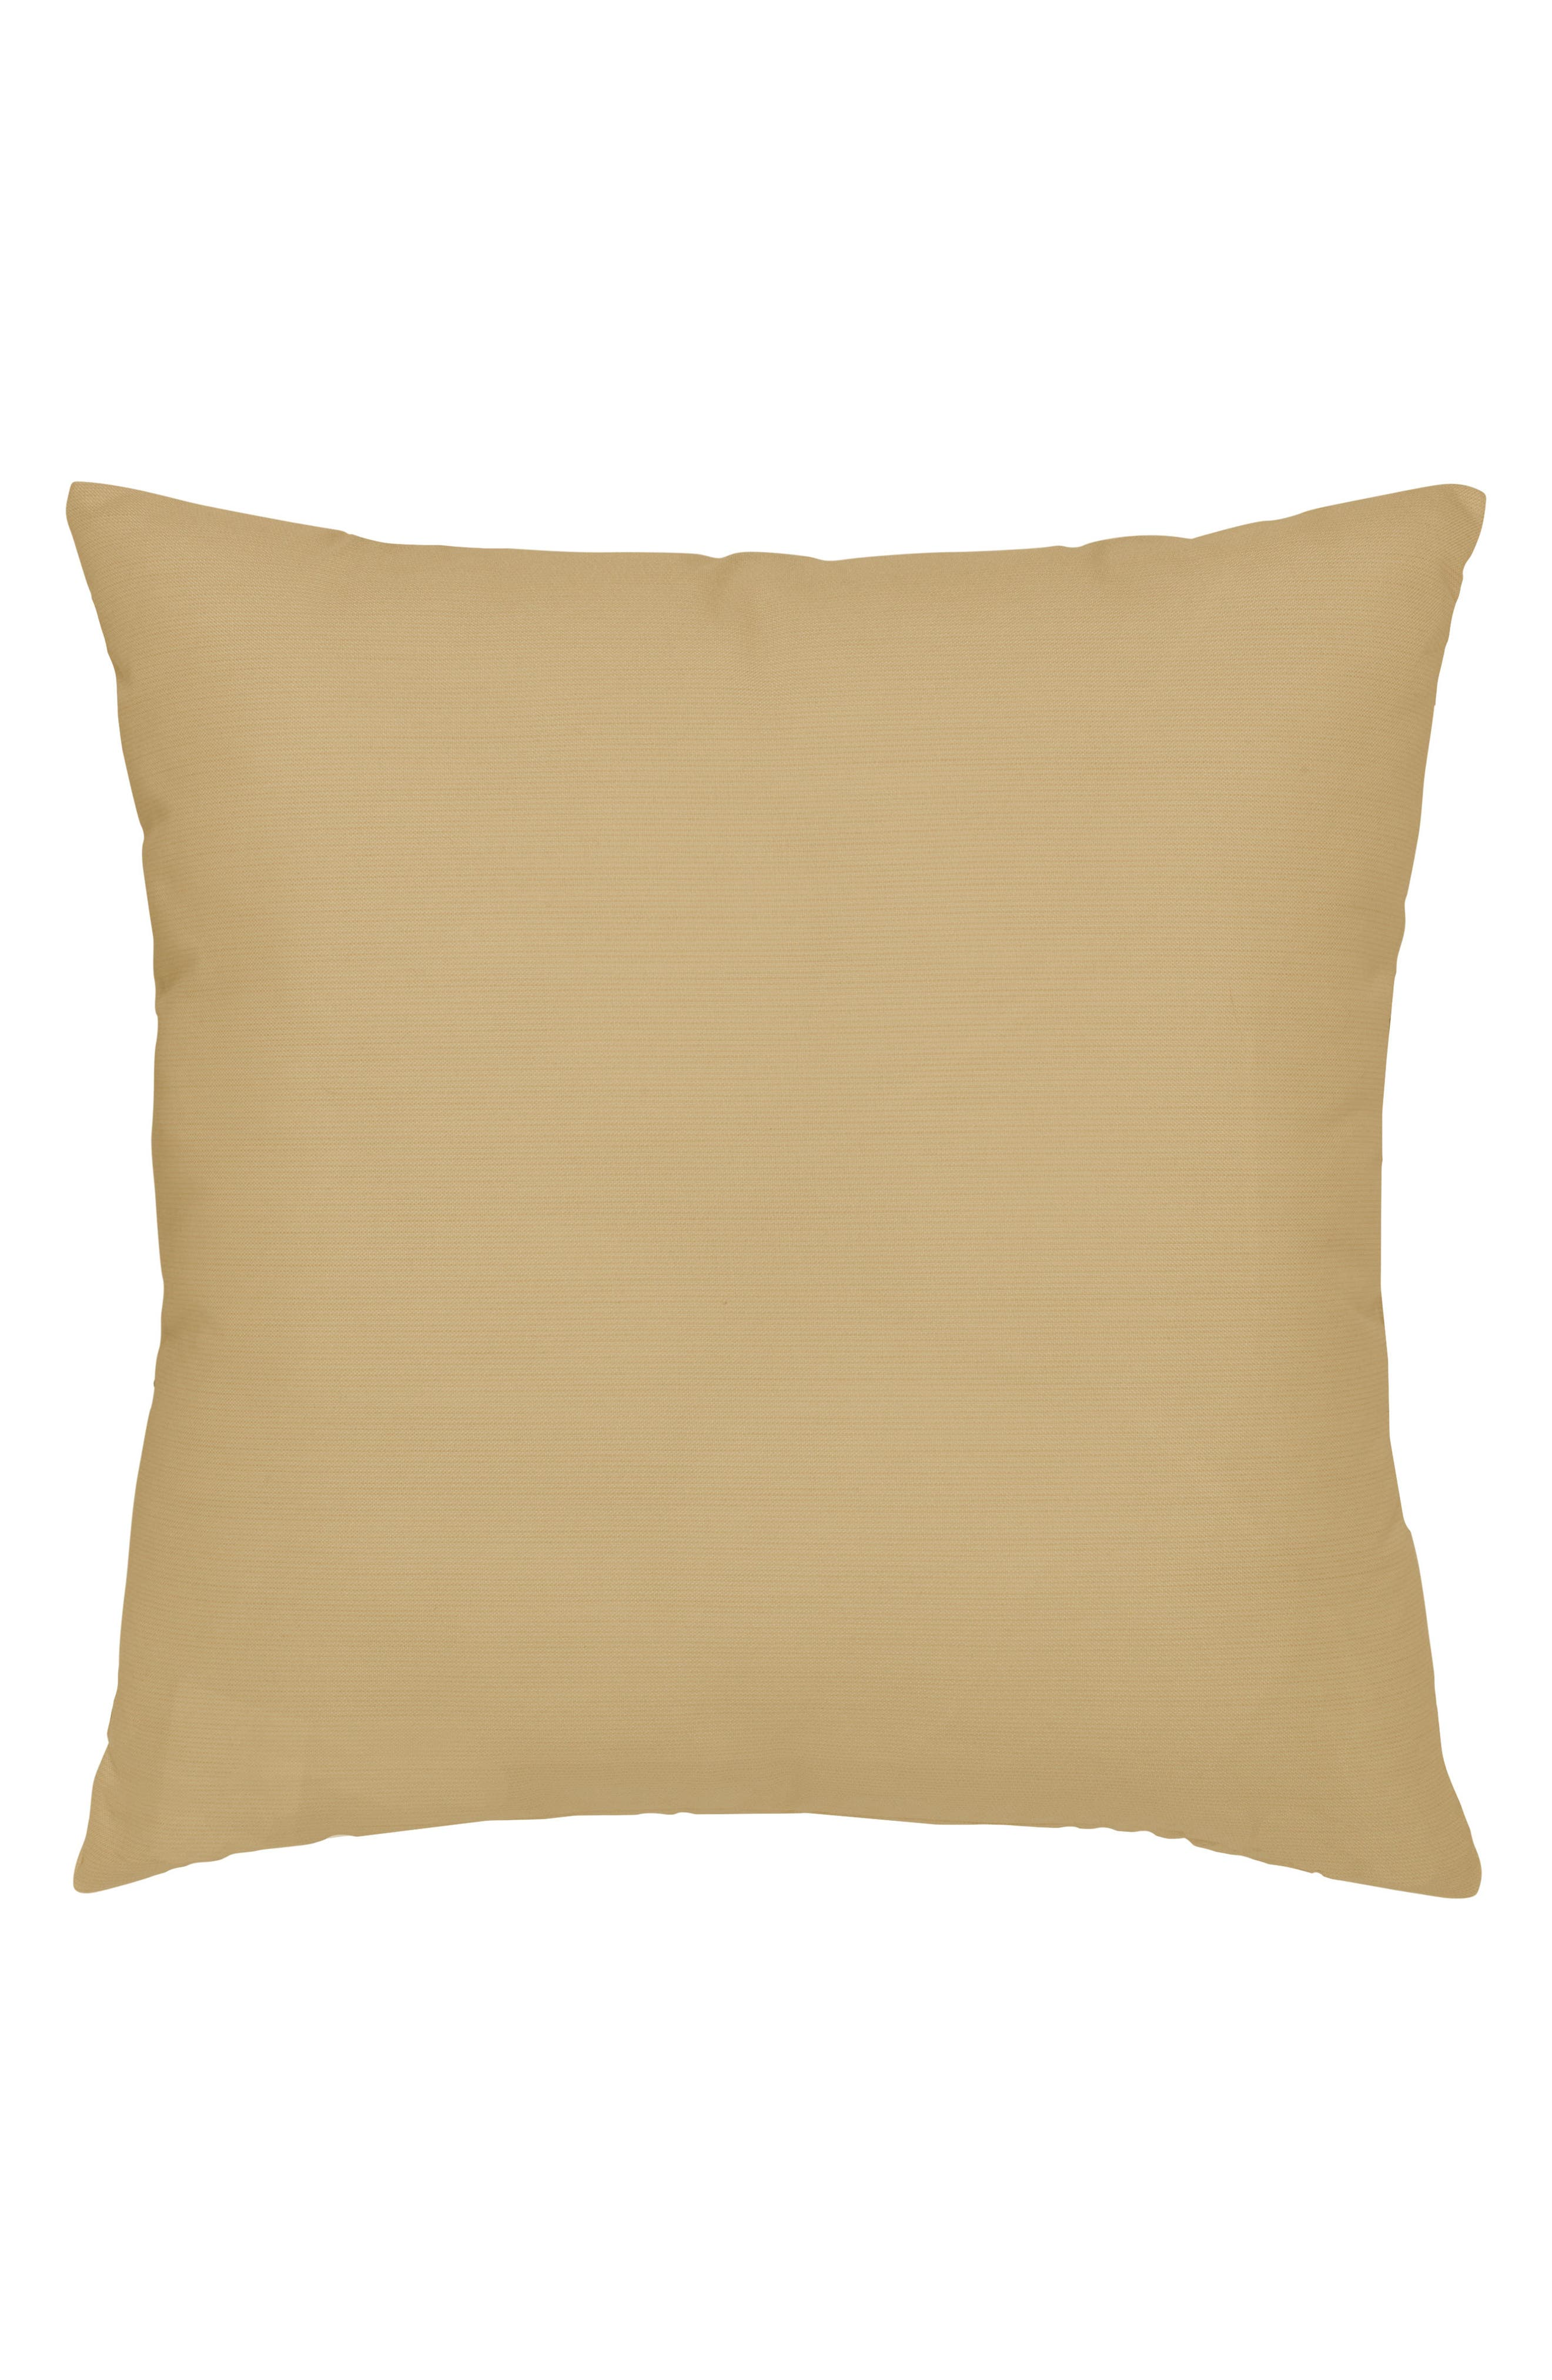 Copper Mountain Indoor/Outdoor Accent Pillow,                             Alternate thumbnail 2, color,                             Brown